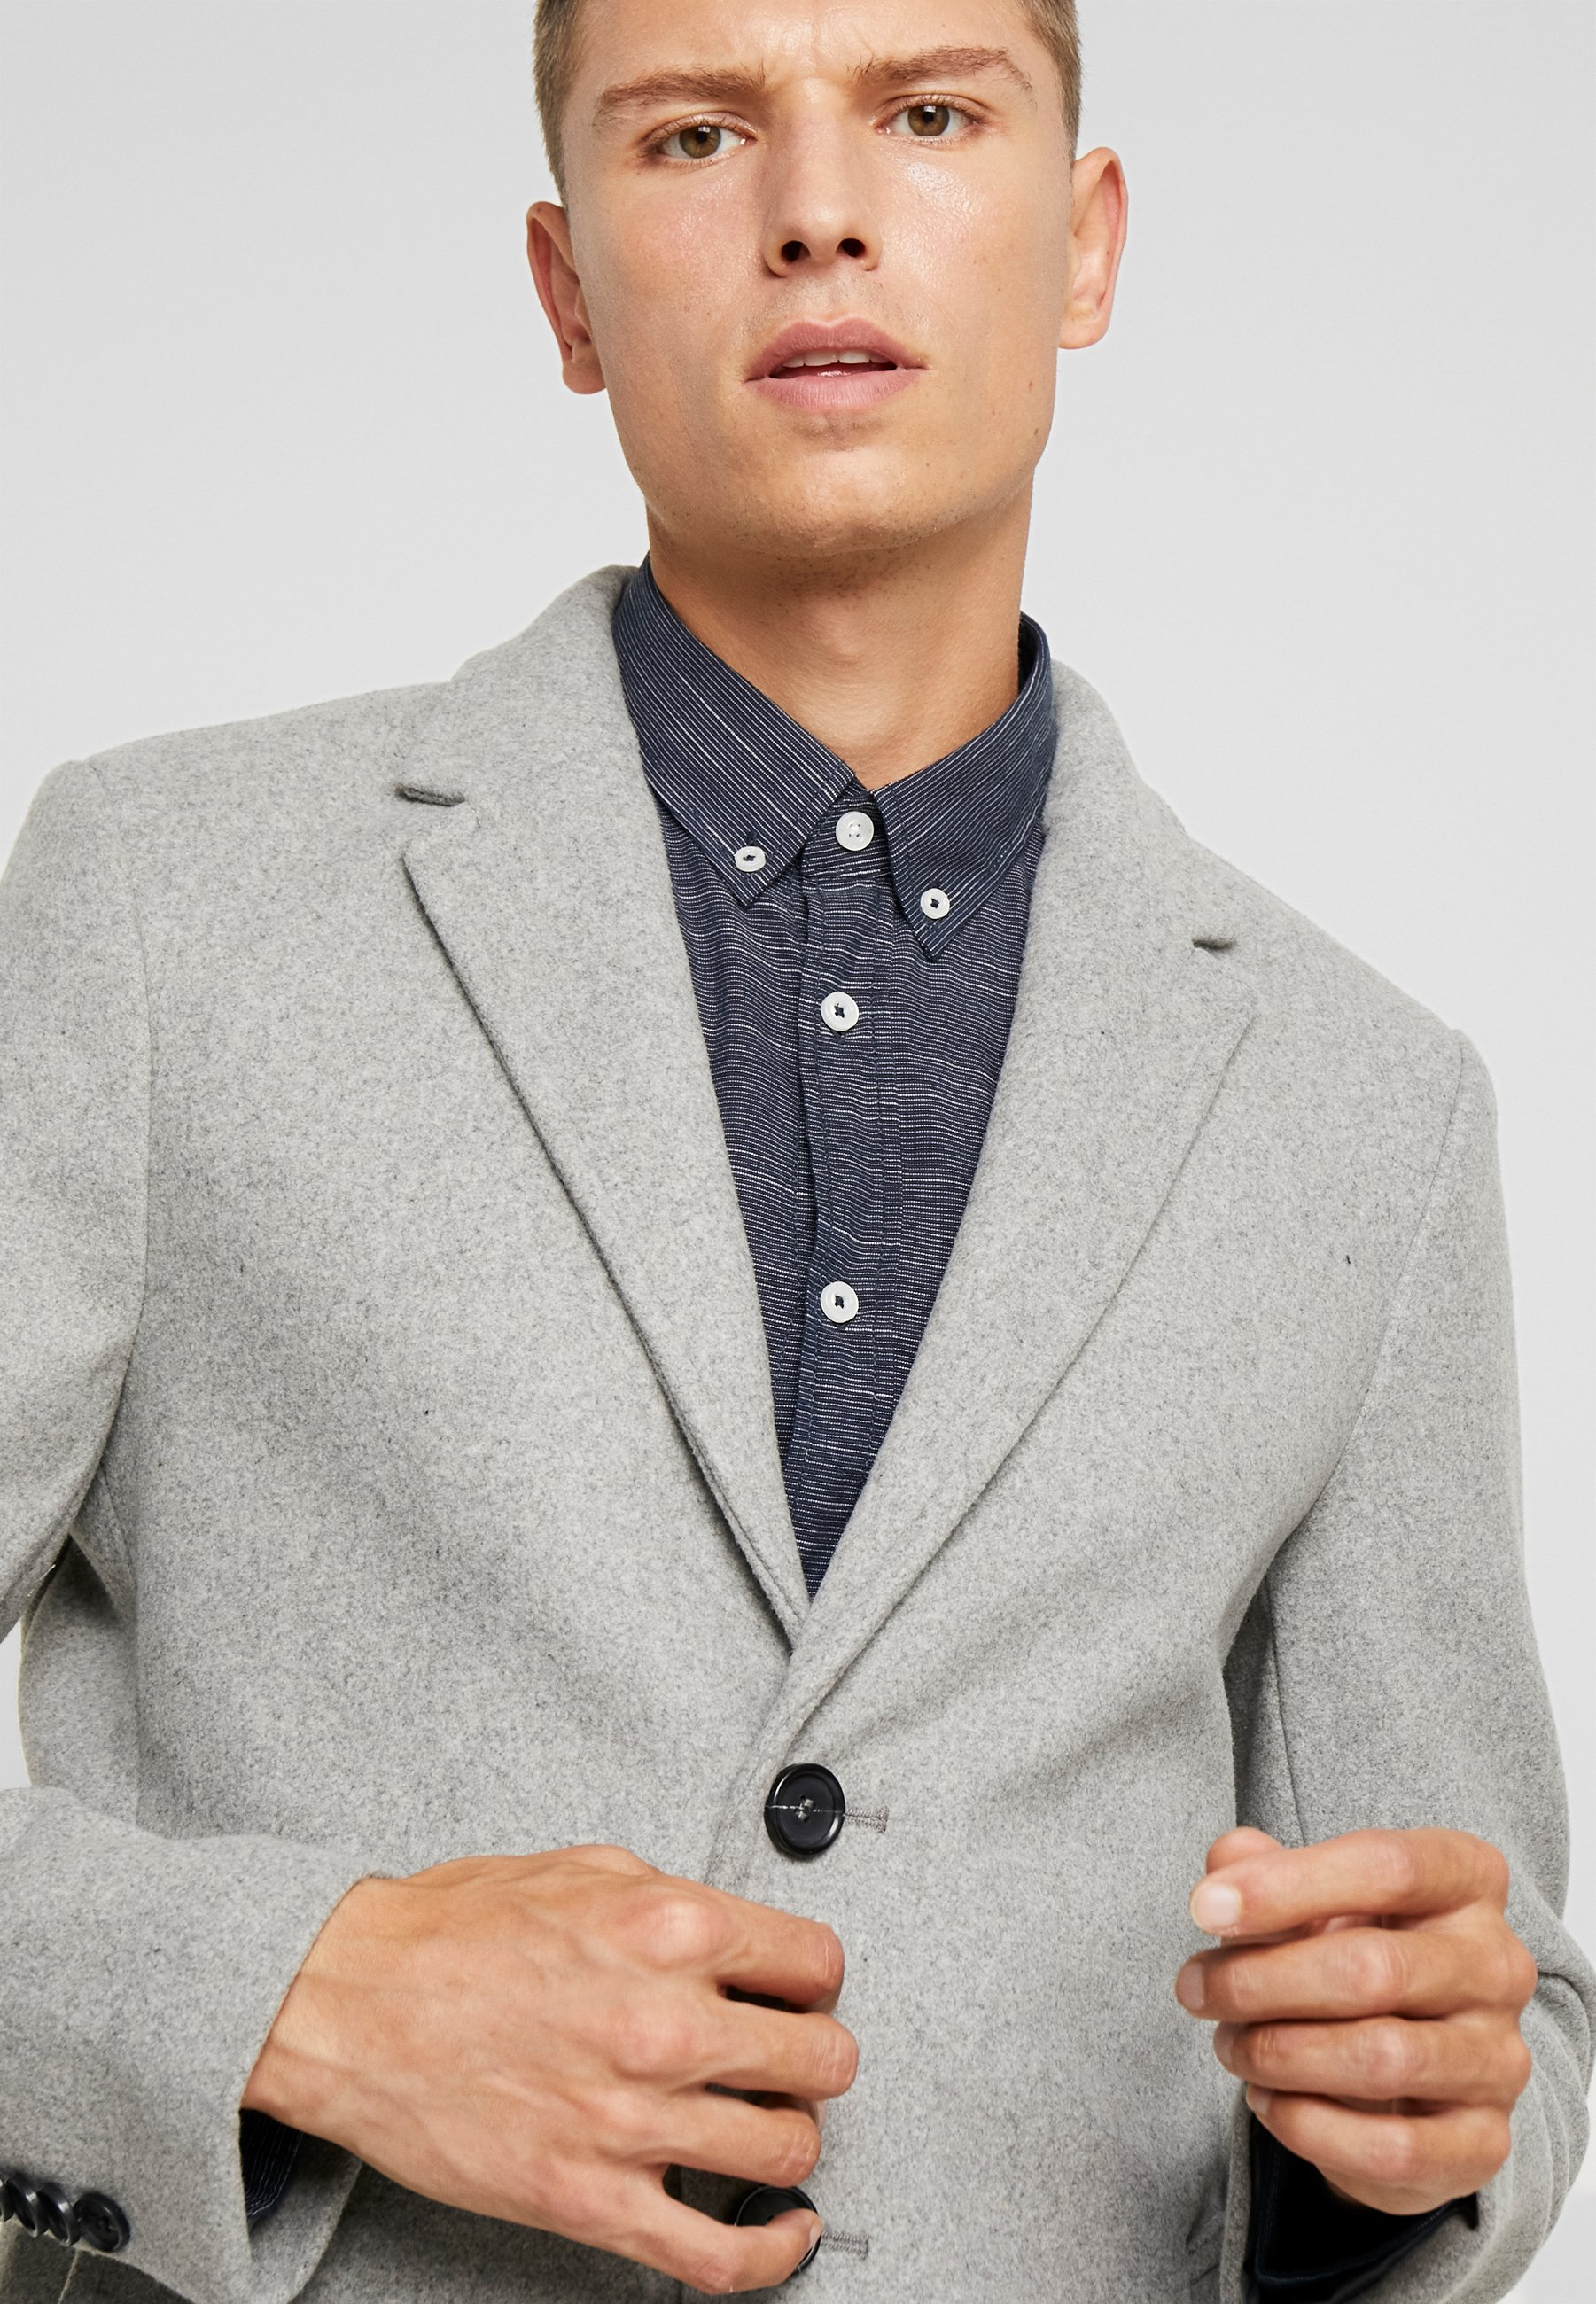 Wool Light Grey Tailor Corto Tom IuttonsCappotto Coat n0OwkP